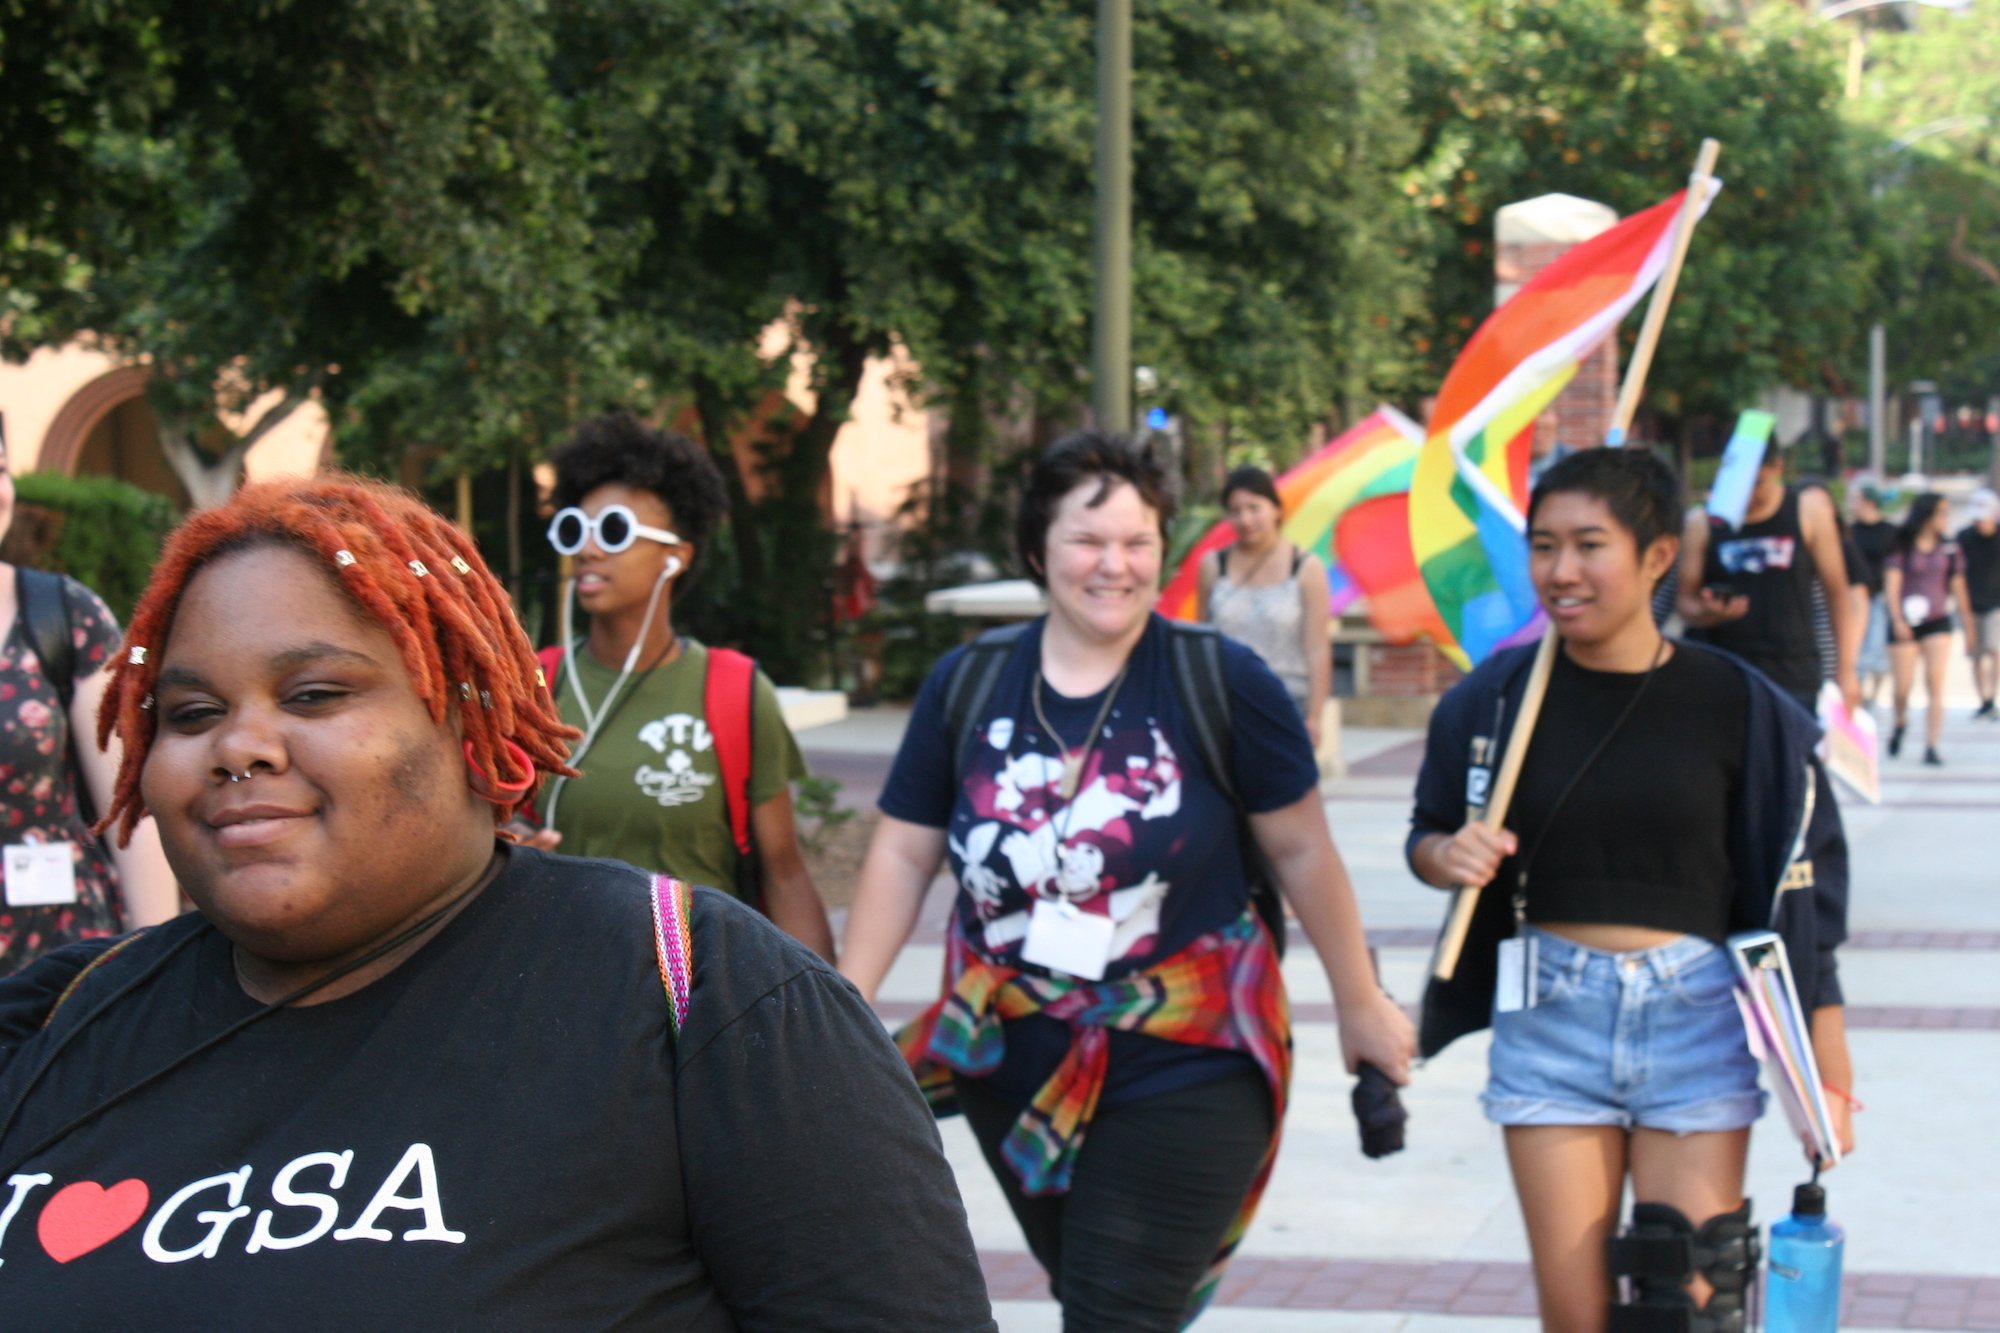 Four trans and queer youth walk along a street. One in the foreground smiles at the camera while wearing a I heart GSA shirt.